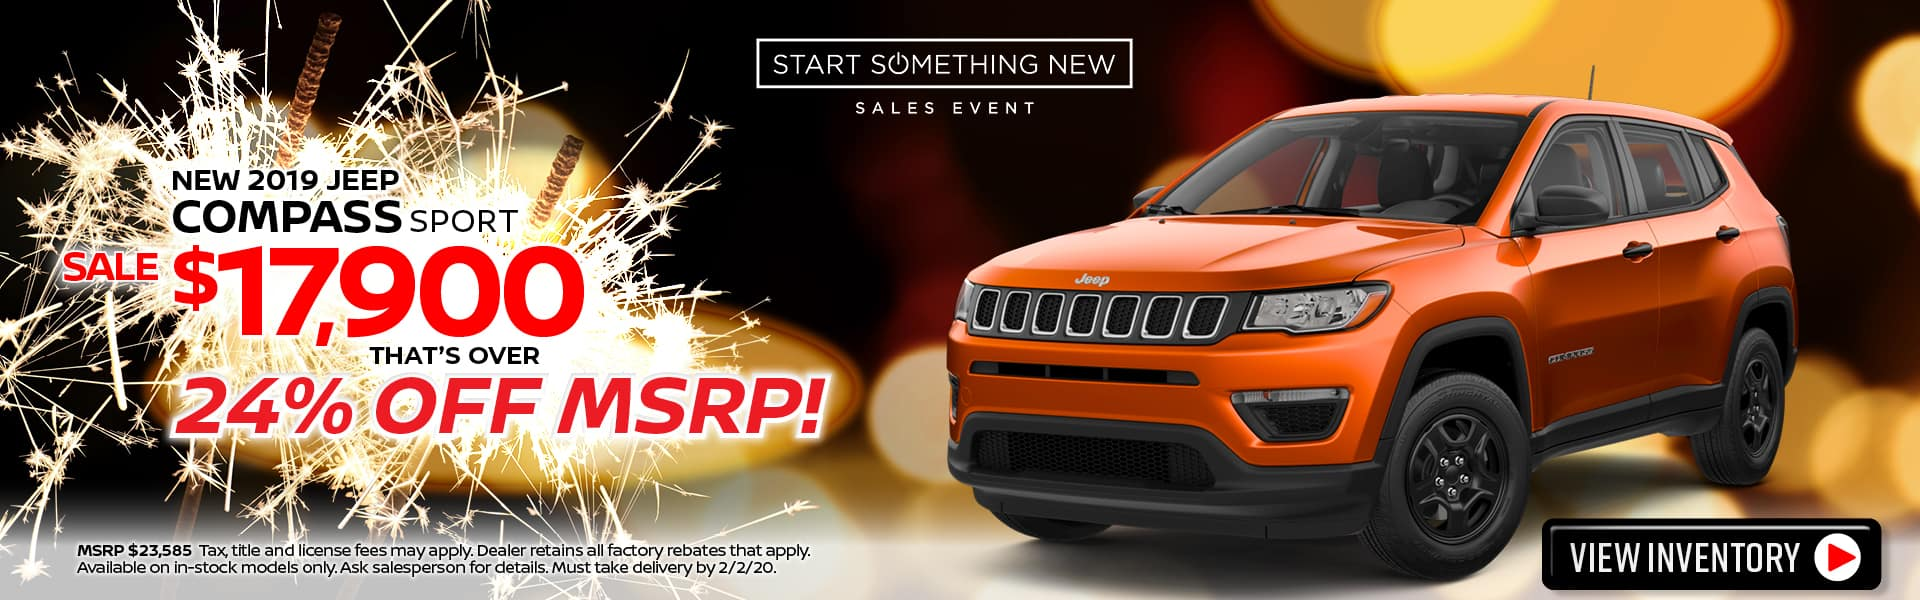 Jeep Compass Special in Middlesboro, KY